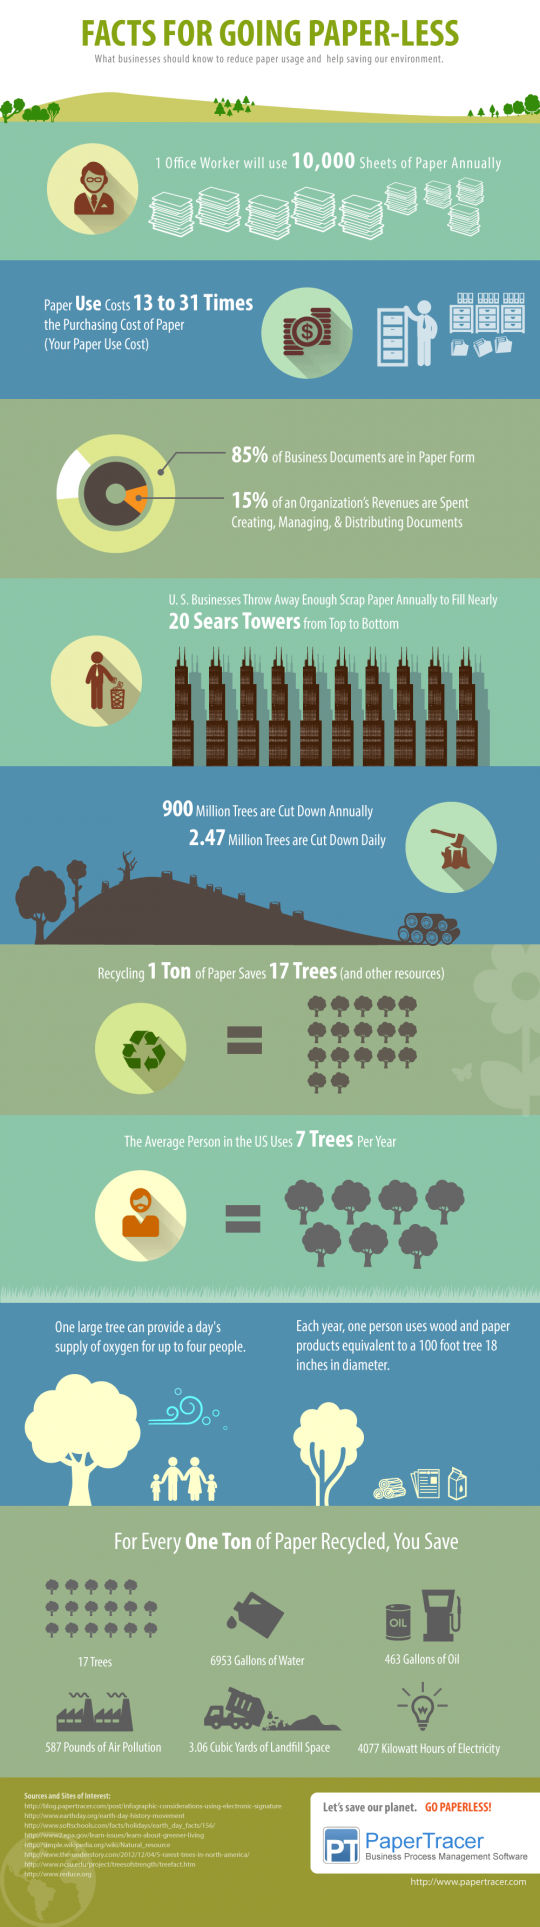 Know the Facts for Going Paperless [Earth Day Infographic]